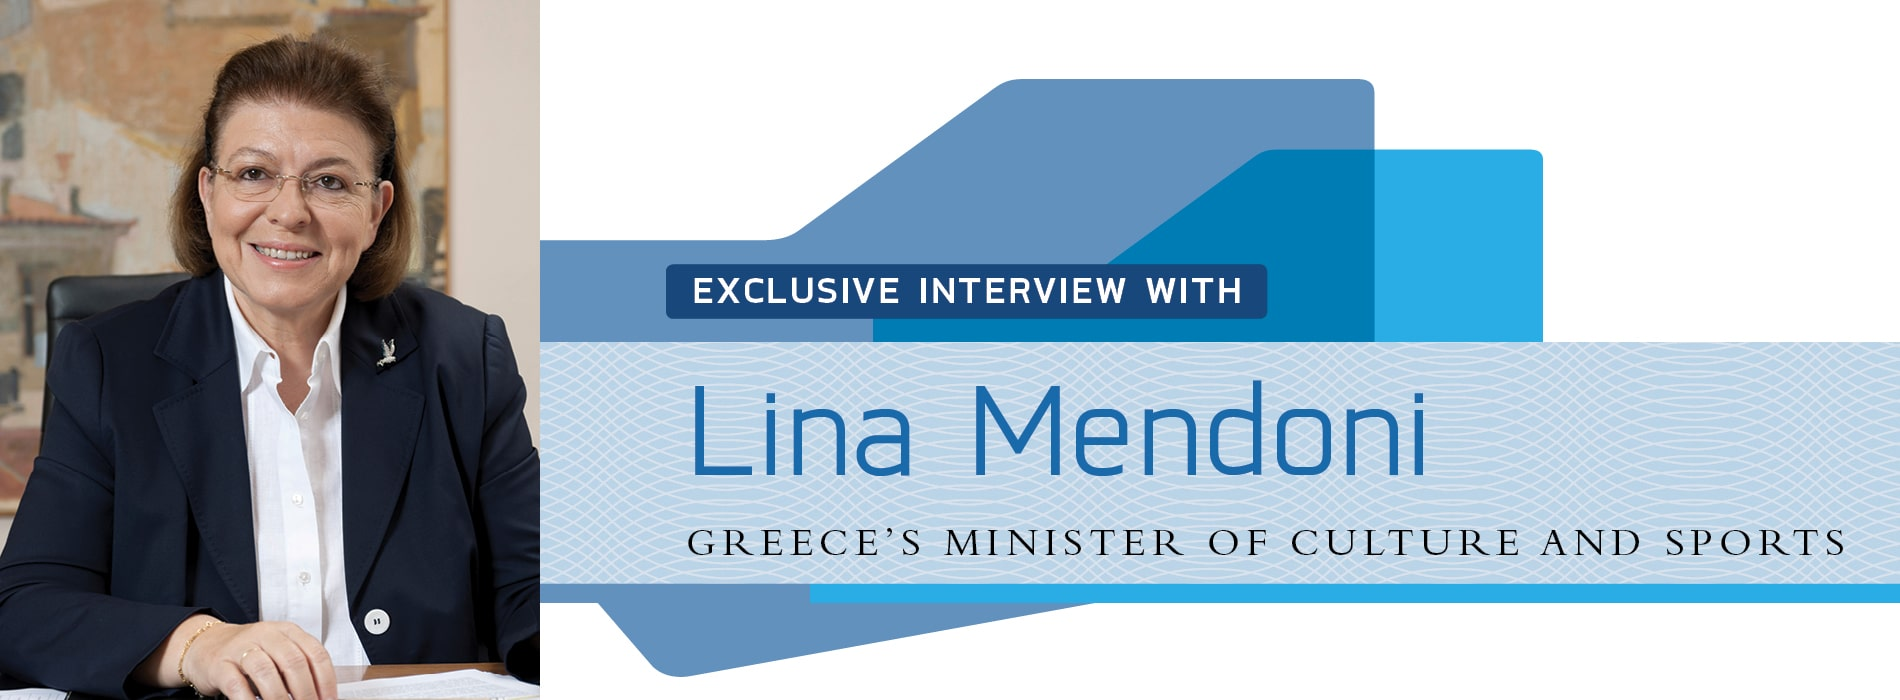 Interview with Lina Mendoni,Greece's Minister of Culture and Sports